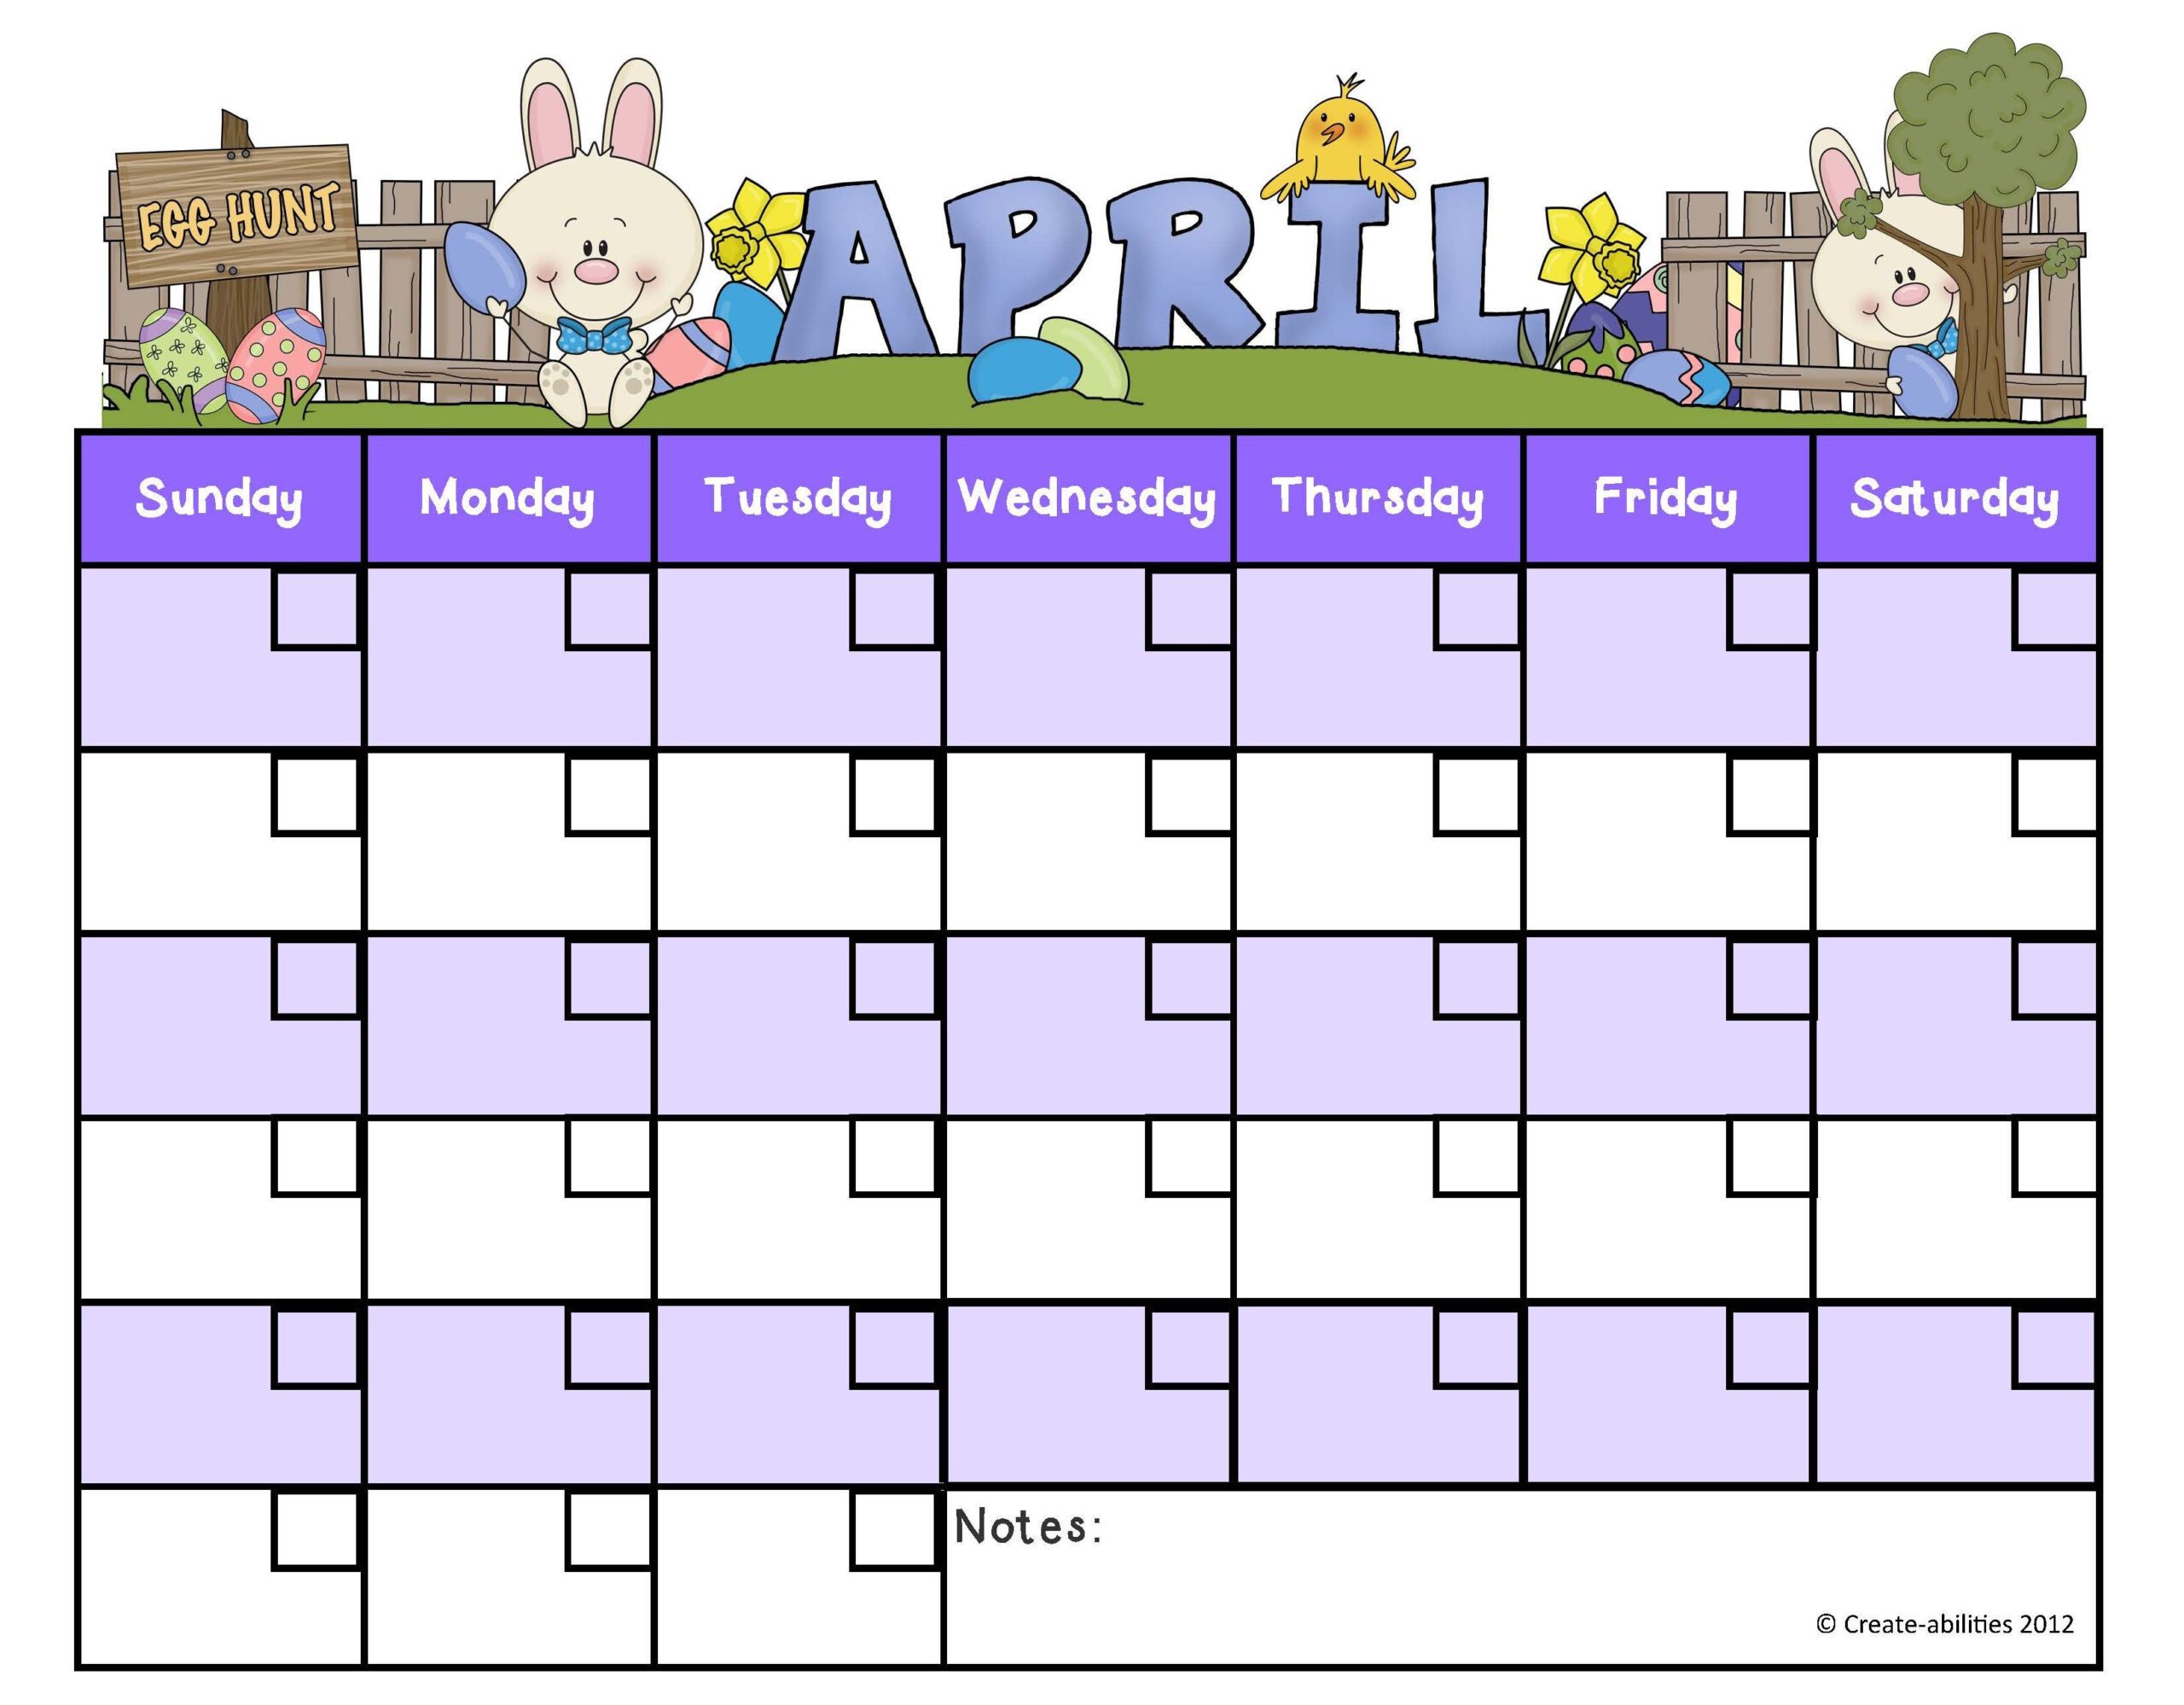 Monthly Calendar Templates Editable   Monthly Calendar  Free Printable And Editable Weekly Calendar